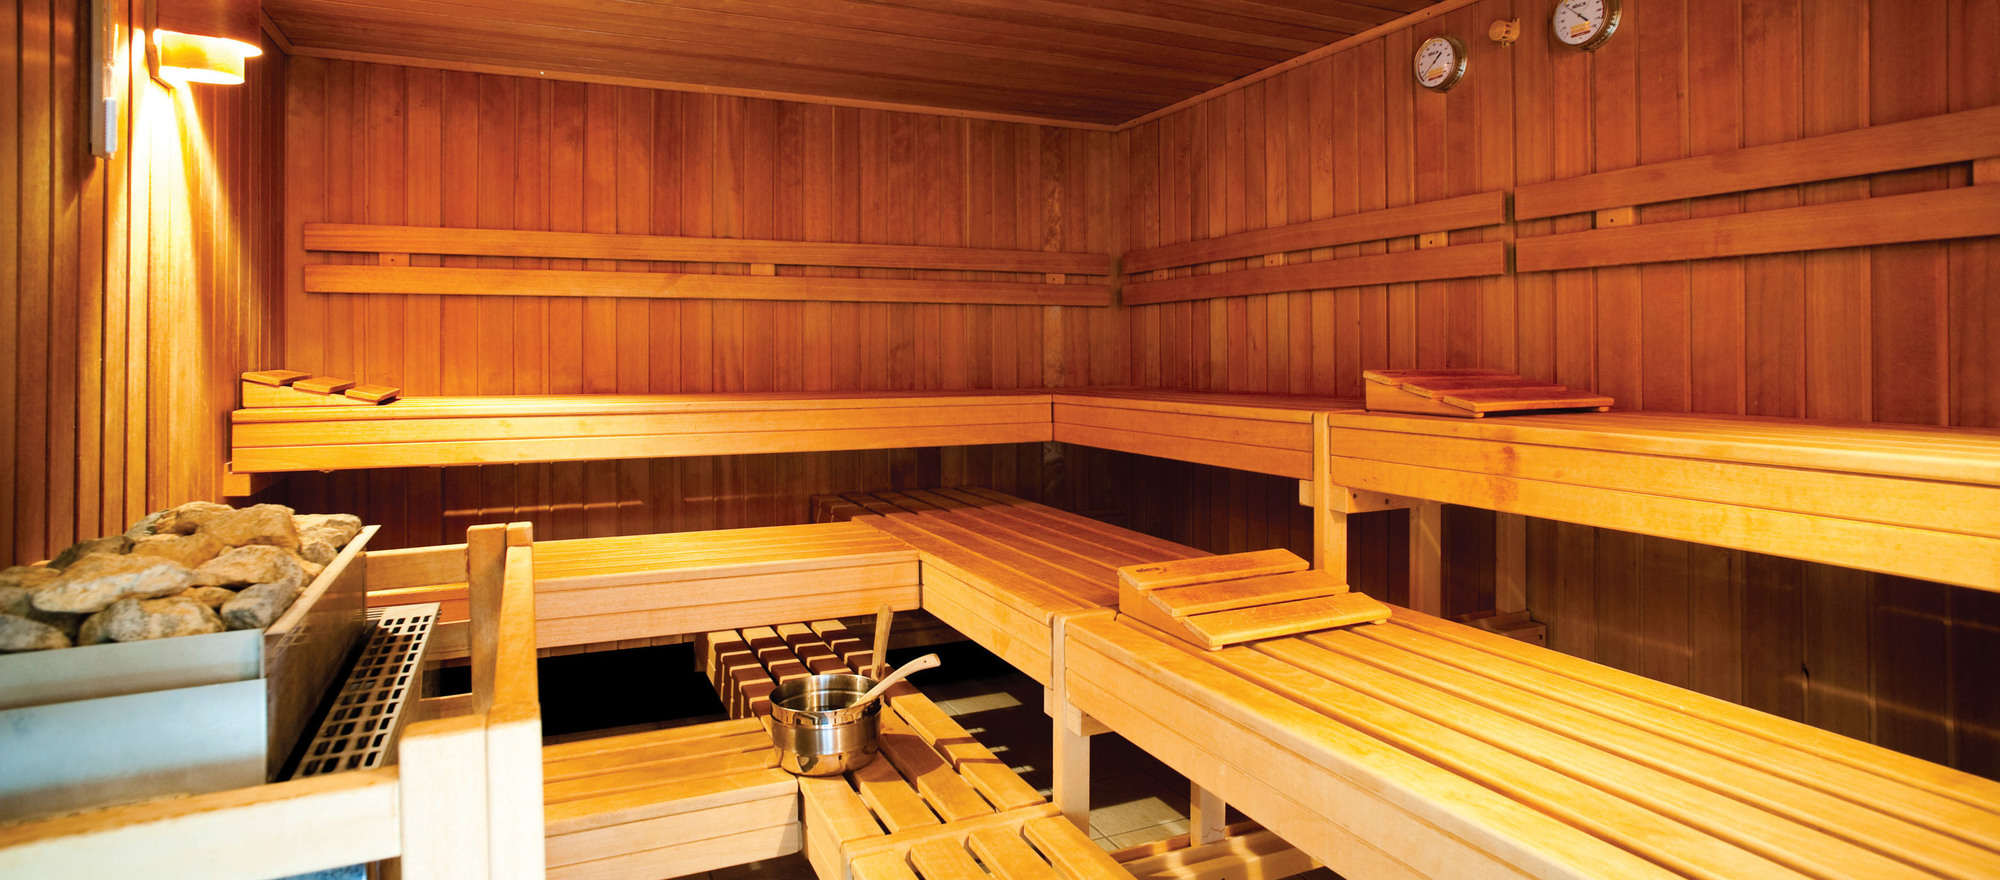 Finnish sauna in the 4-star hotel Ringhotel Birke in Kiel